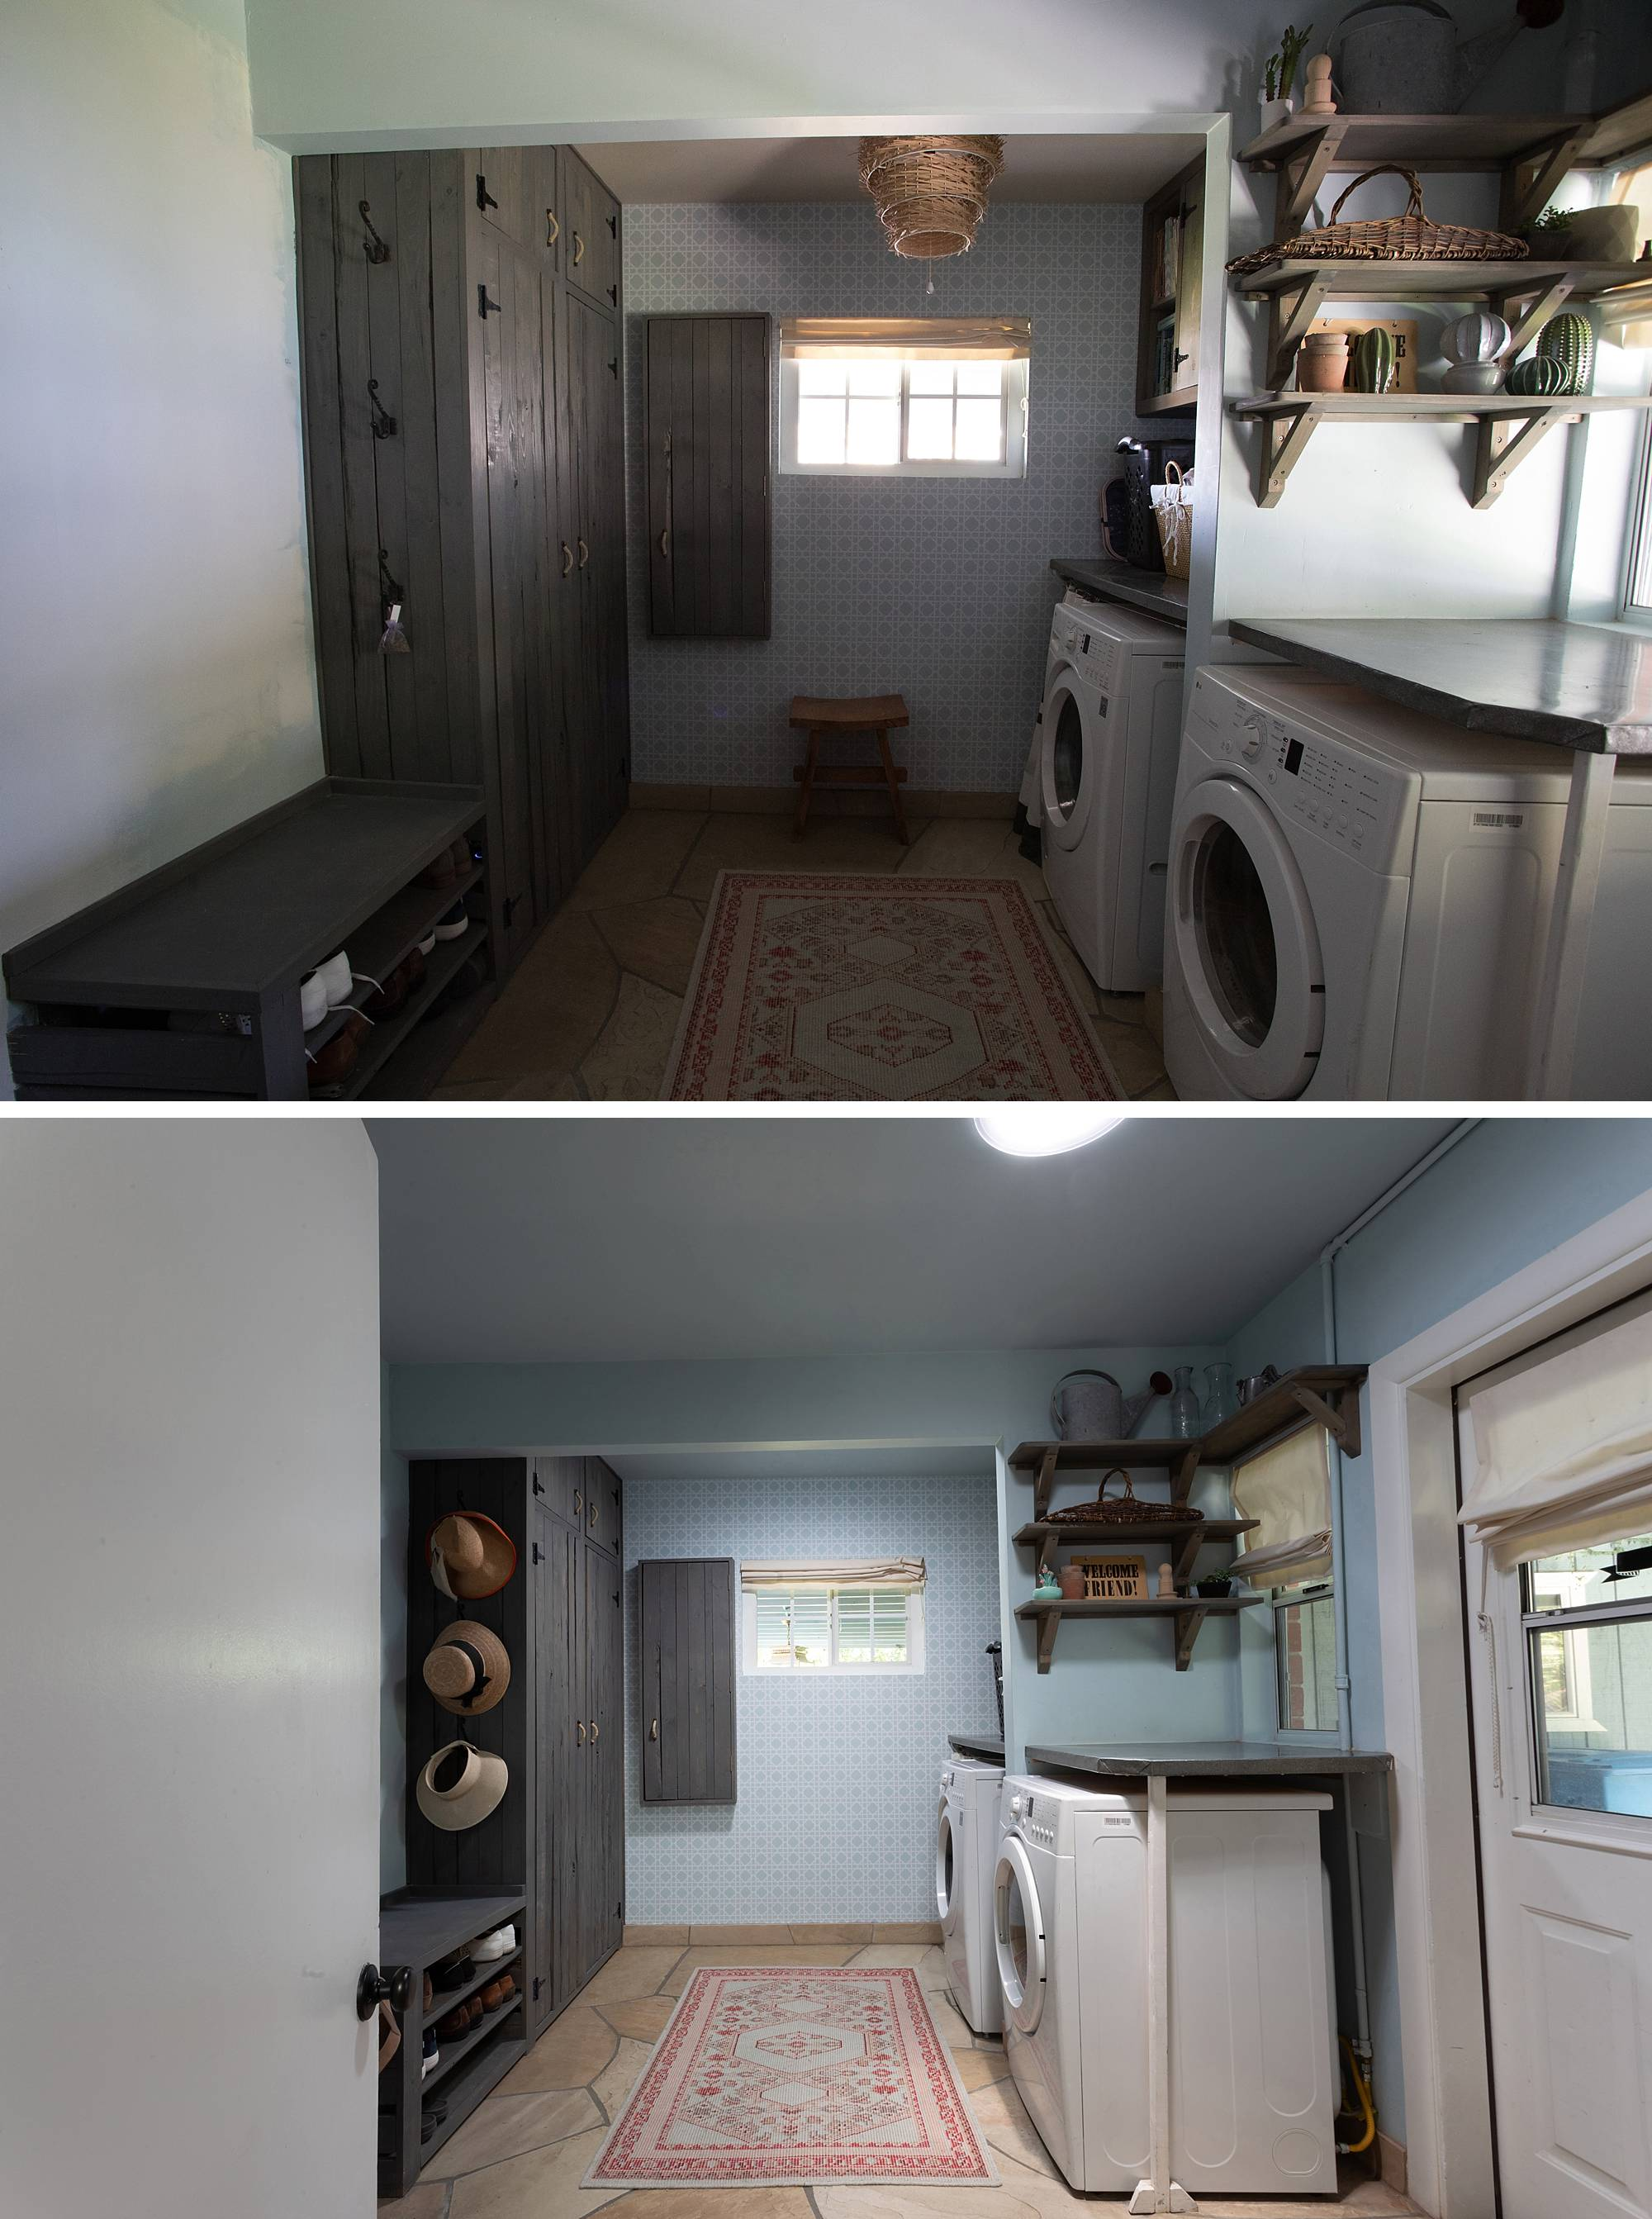 laundry room before after with sun tunnels by VELUX see all the before and after images on the blog